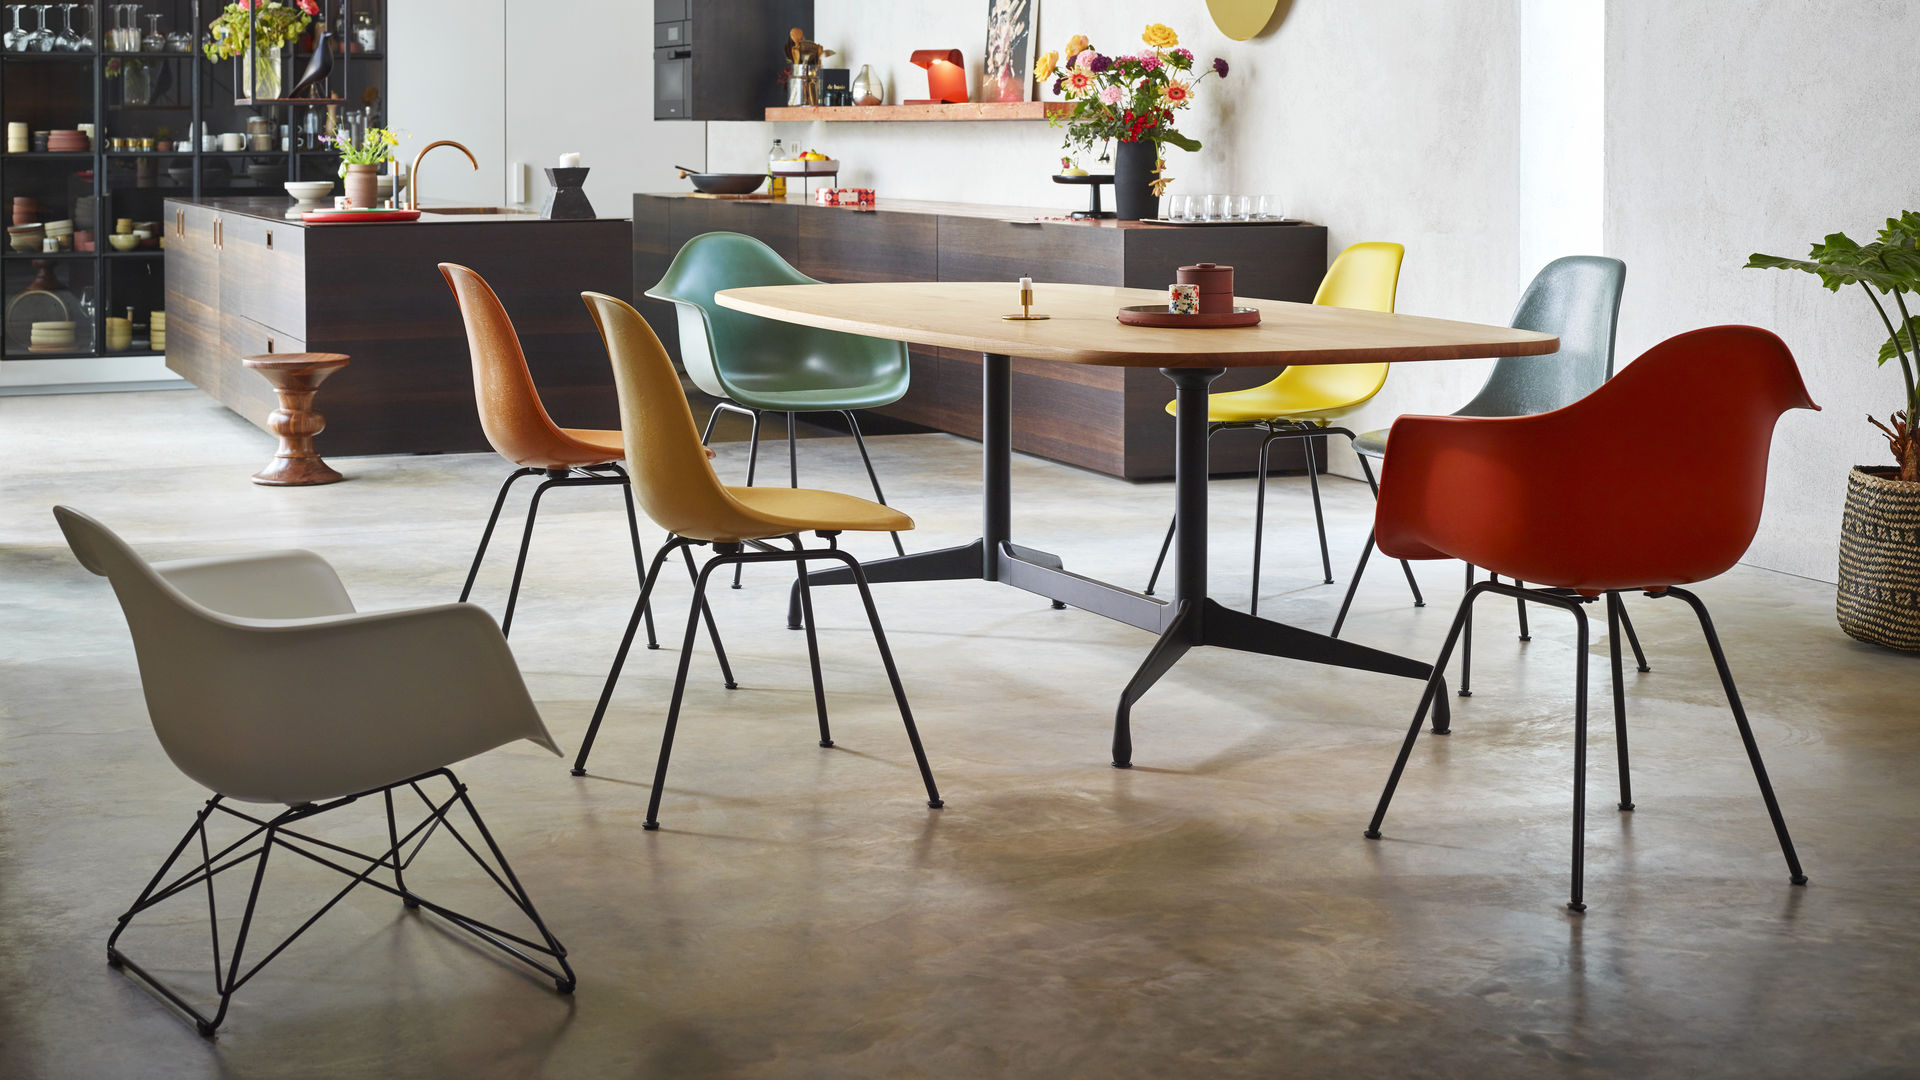 Eames Segmented Tables Dining Eames Plastic Chair Eames Fiberglass Chair Eames Plastic Armchair_web_16-9